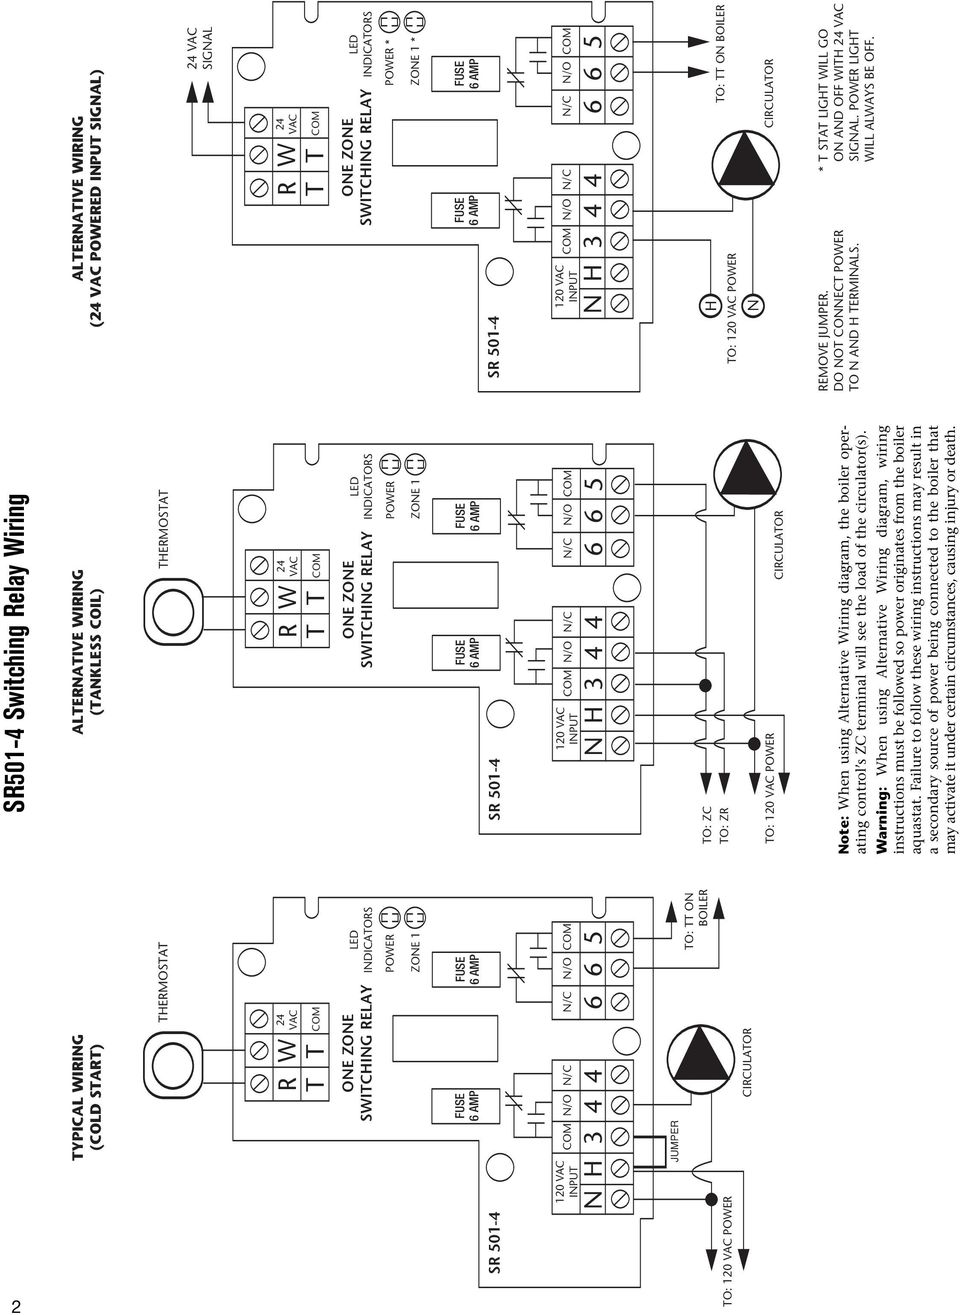 taco zvc404 exp wiring diagram